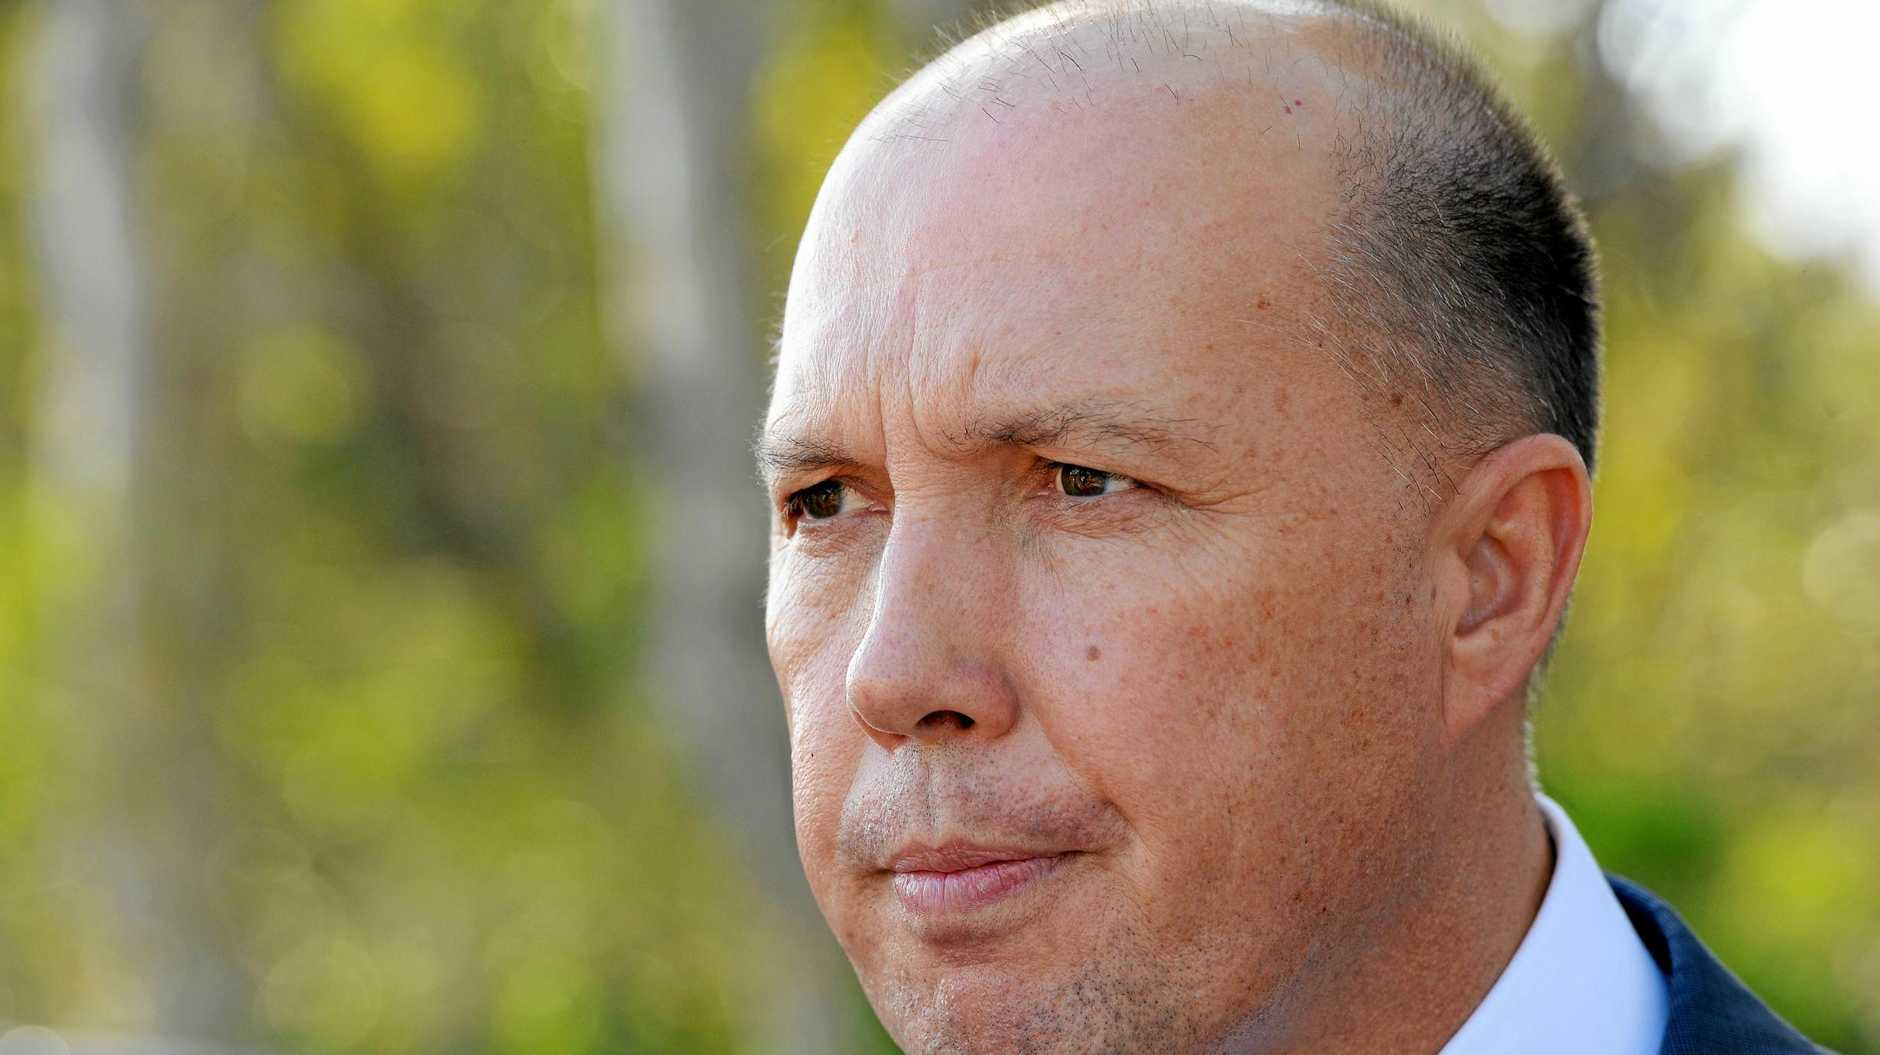 GRIFFTH University senior lecturer in politics, Dr Paul Williams, says if Peter Dutton (pictured) takes over from Malcolm Turnbull he would need to call an election before Christmas.